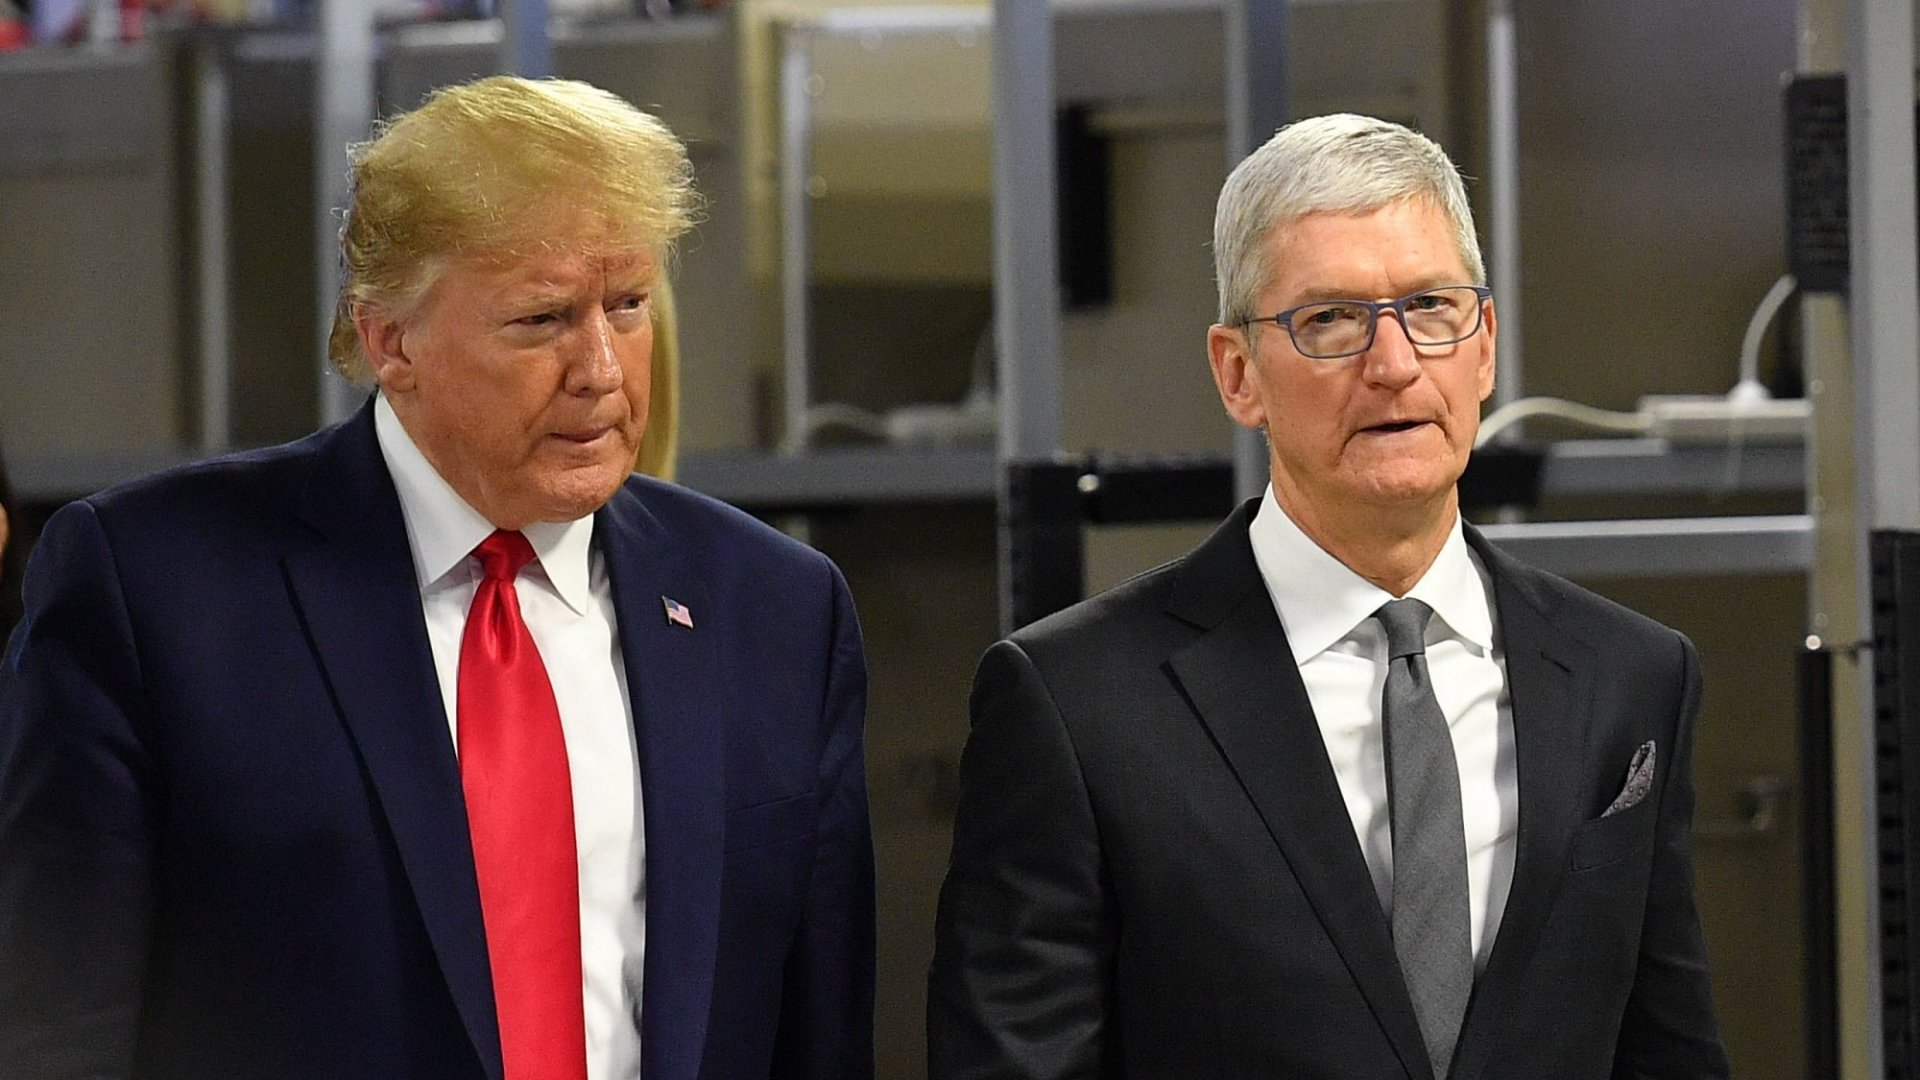 President Trump Tried to Take Credit for Apple's Mac Pro Manufacturing Plant. Here's Why He Shouldn't